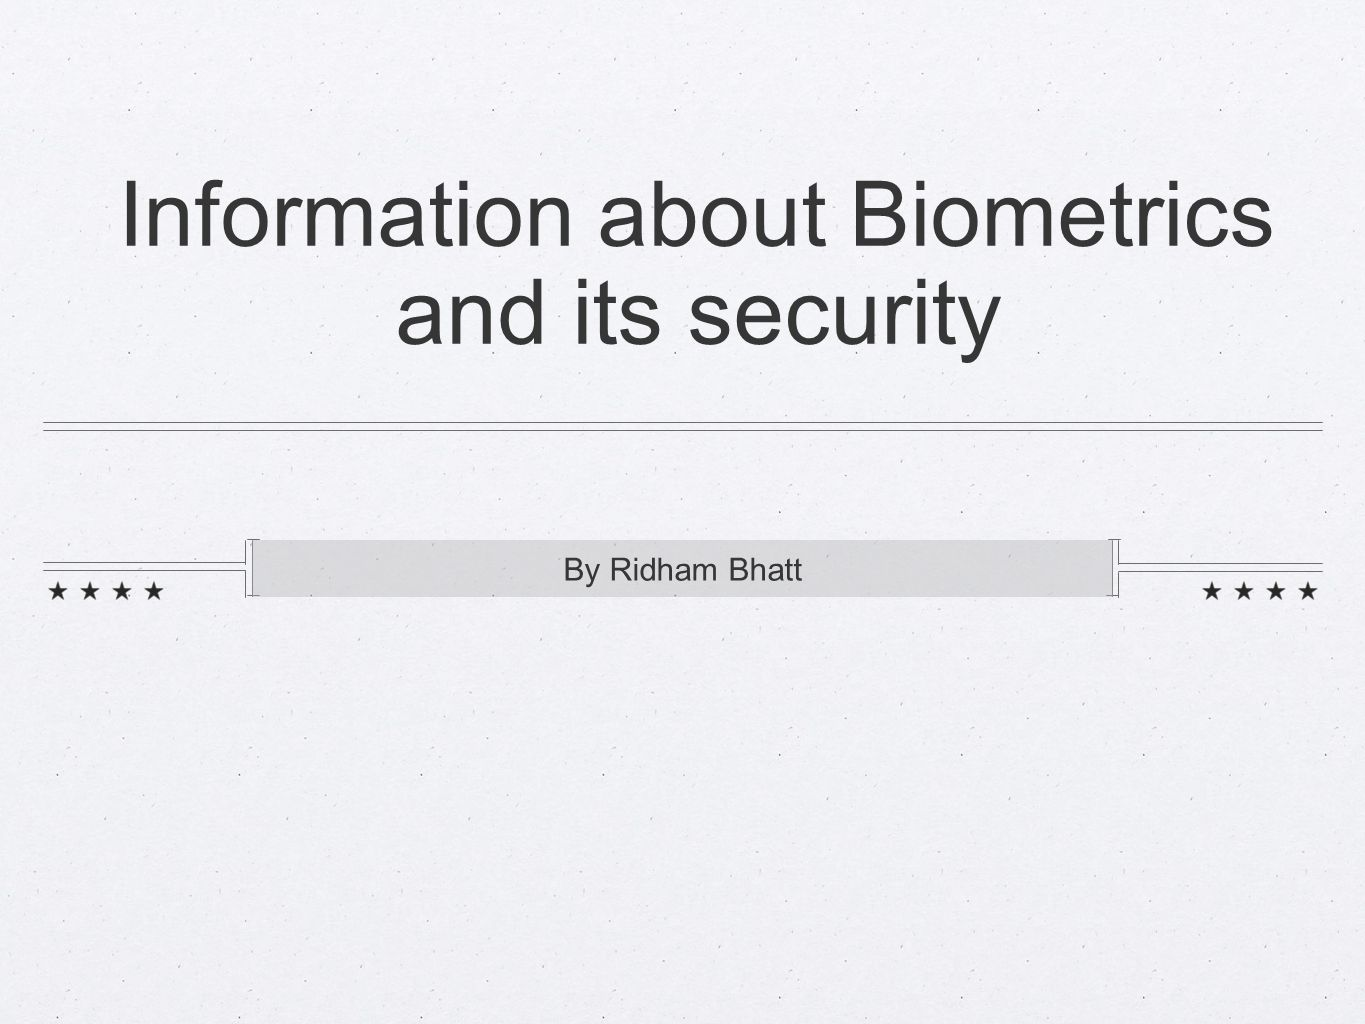 Information about Biometrics and its security By Ridham Bhatt